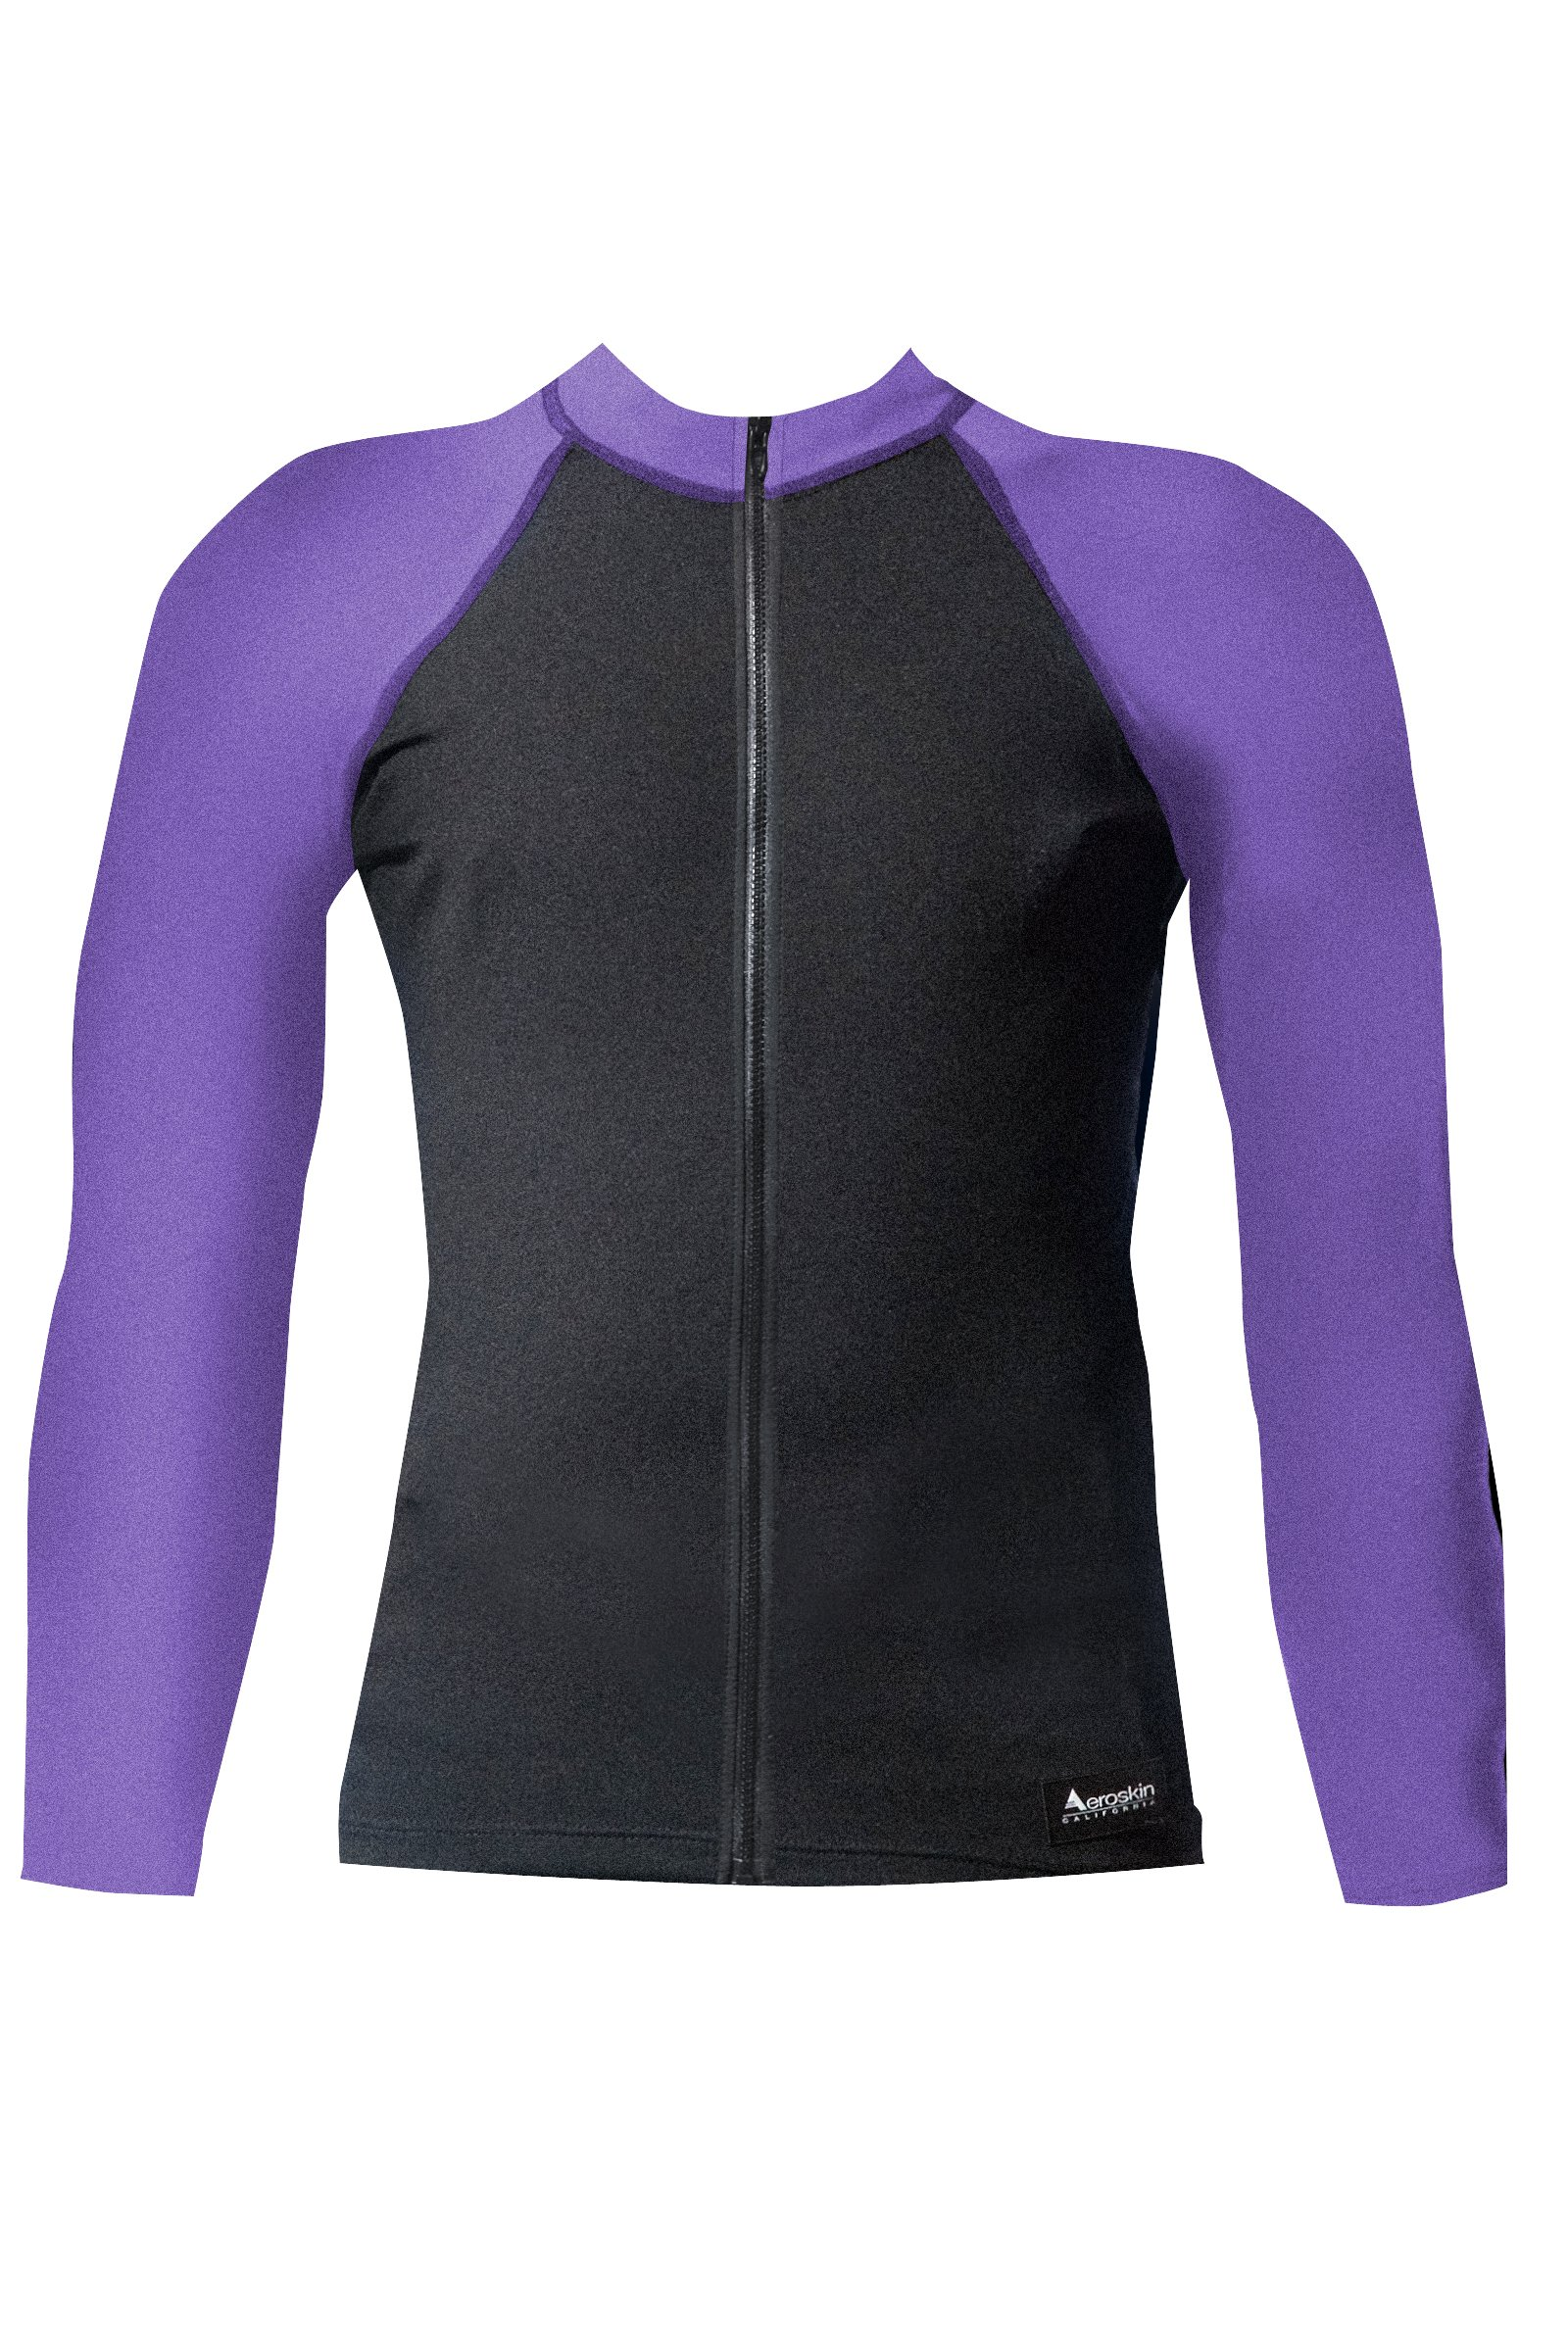 Aeroskin Raglan Long Sleeve Shirt with Color Accents, Fuzzy Collar and Front Zip (Black/Purple, X-Small)